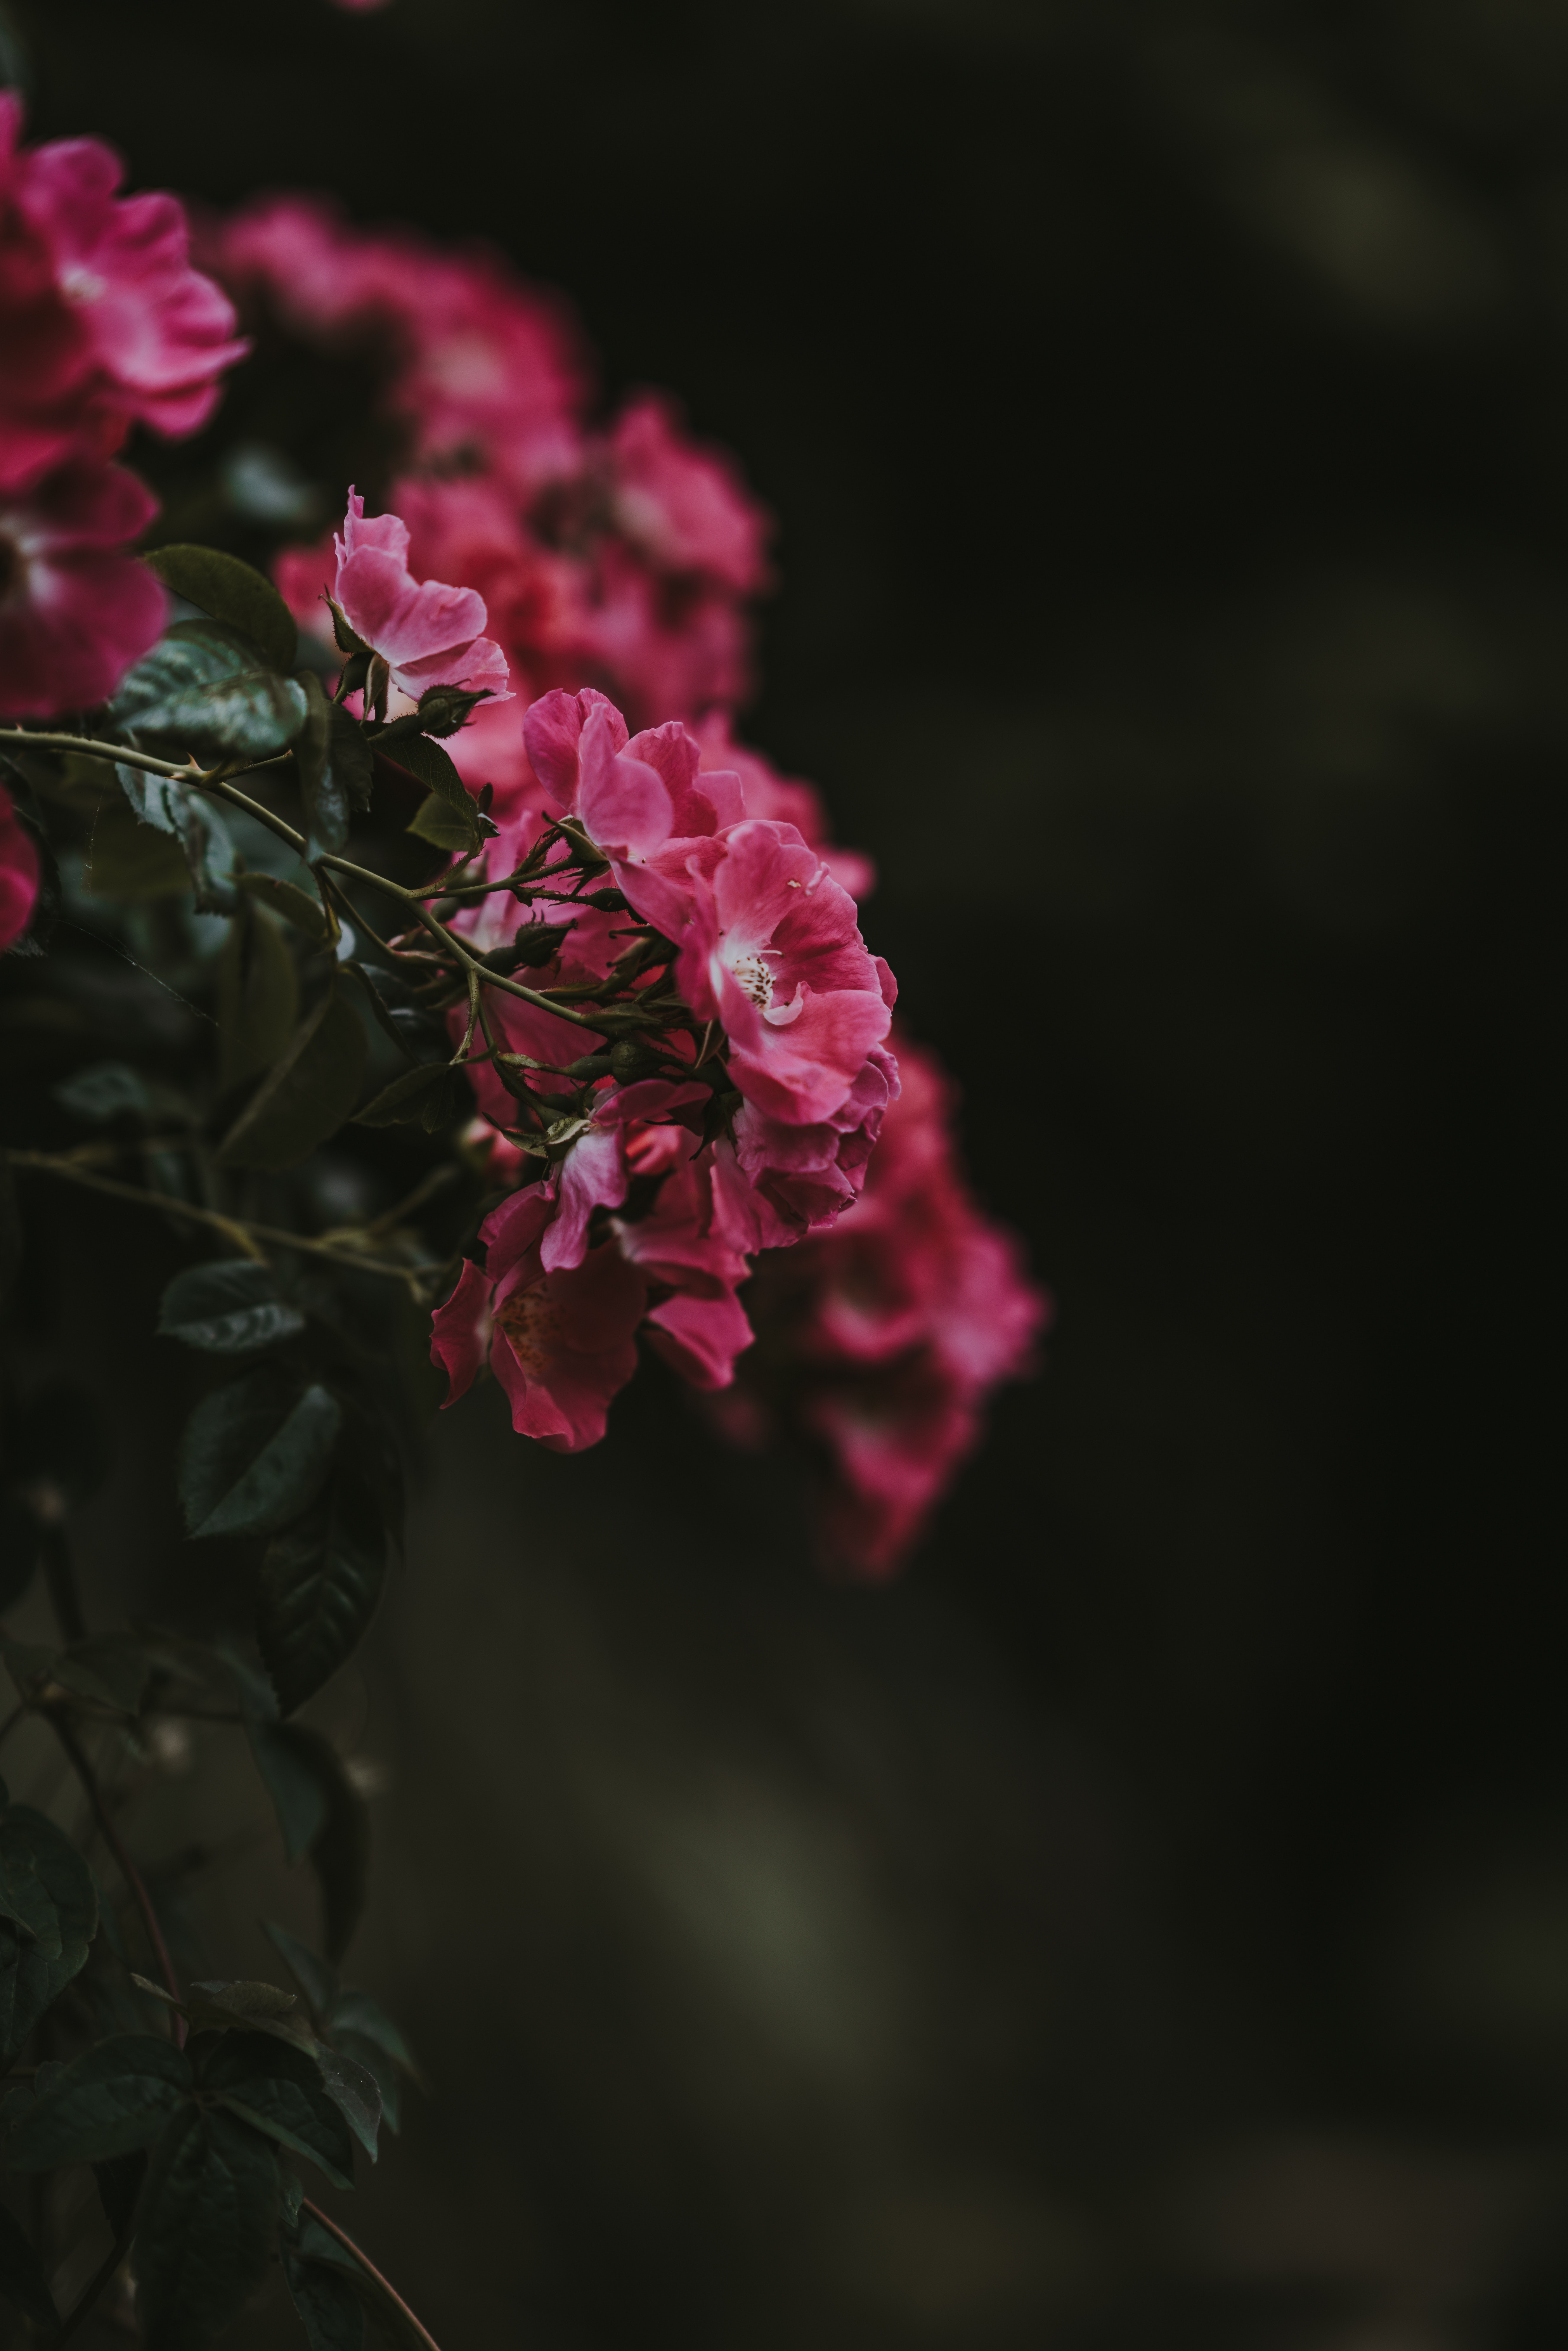 red clustered petaled flower in selective focus photography